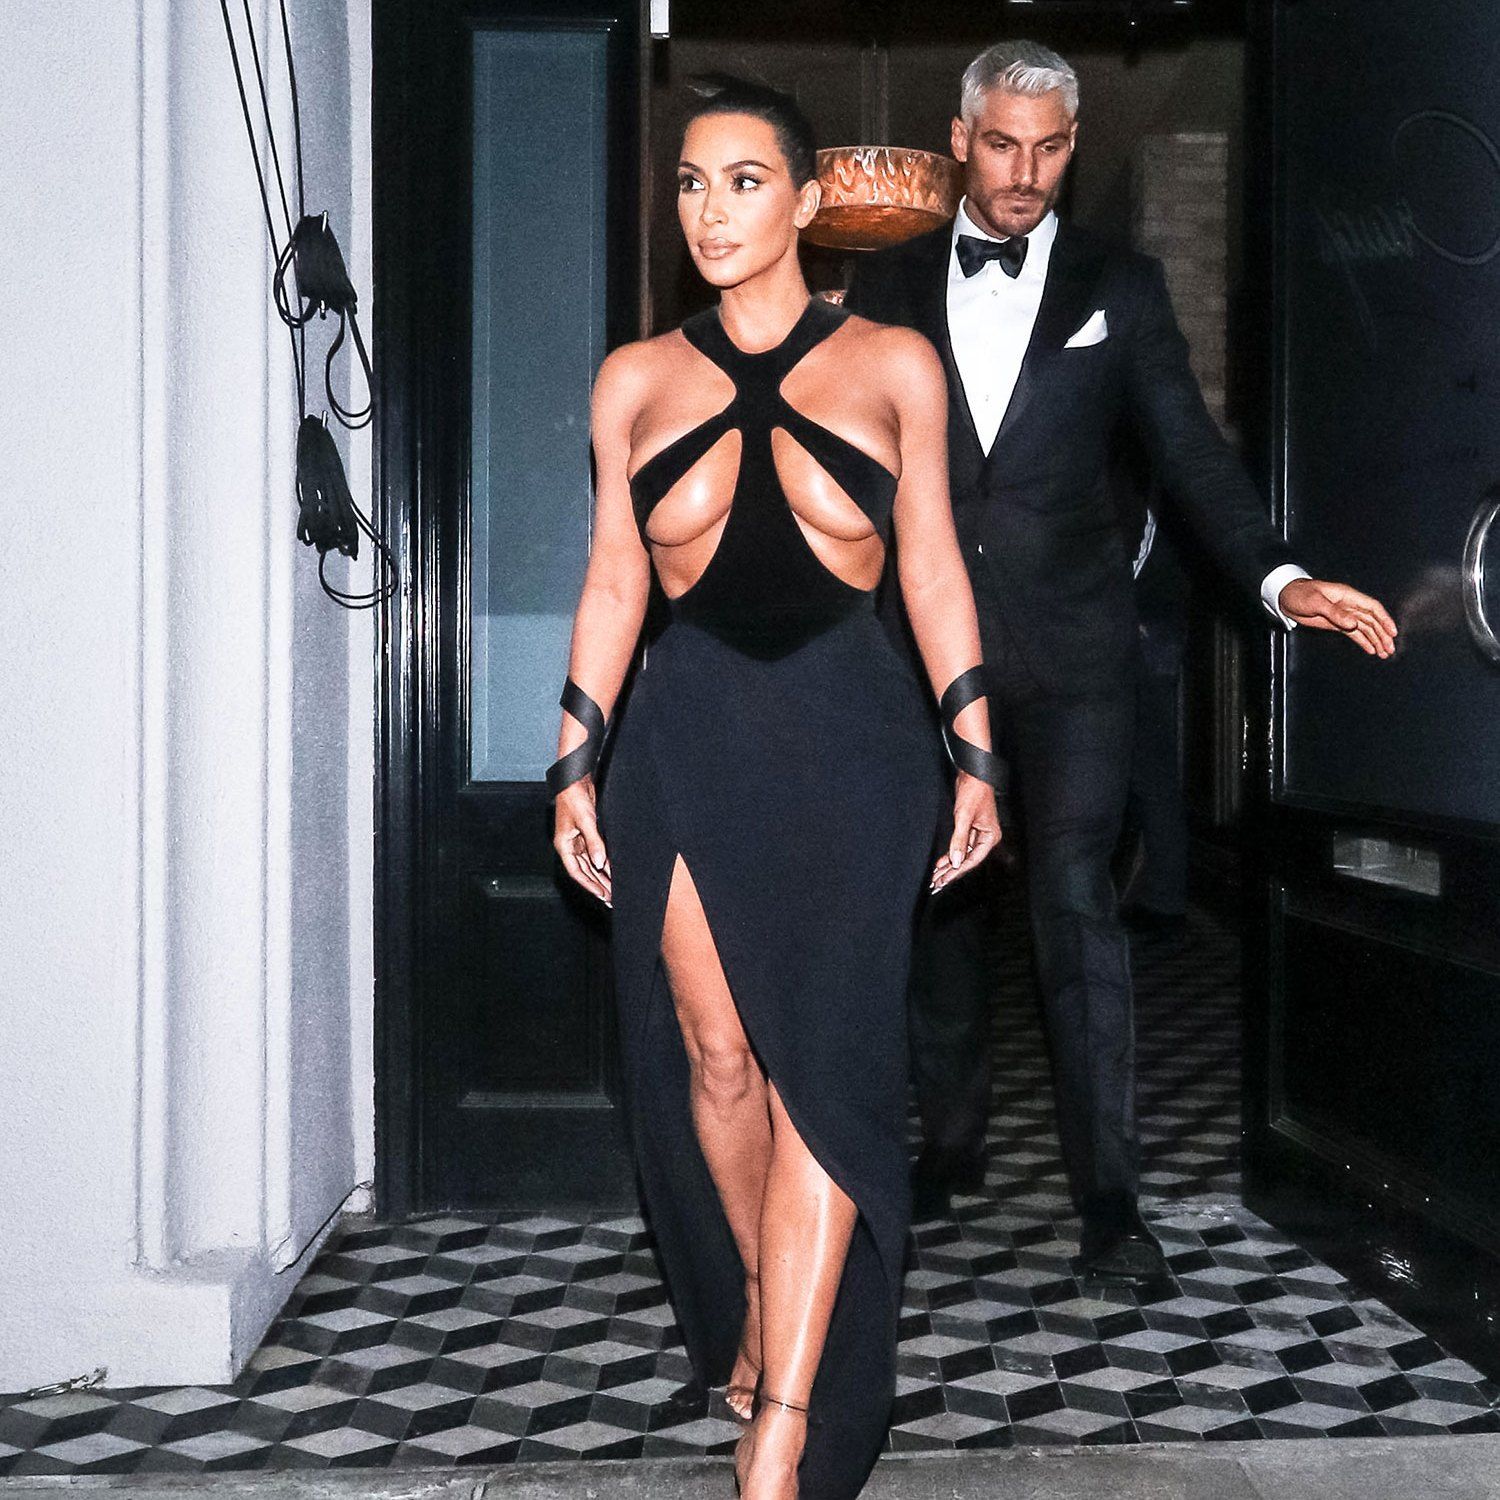 Kim Kardashian Joins the Nearly Naked Dress Club in an Ultra-Racy Look